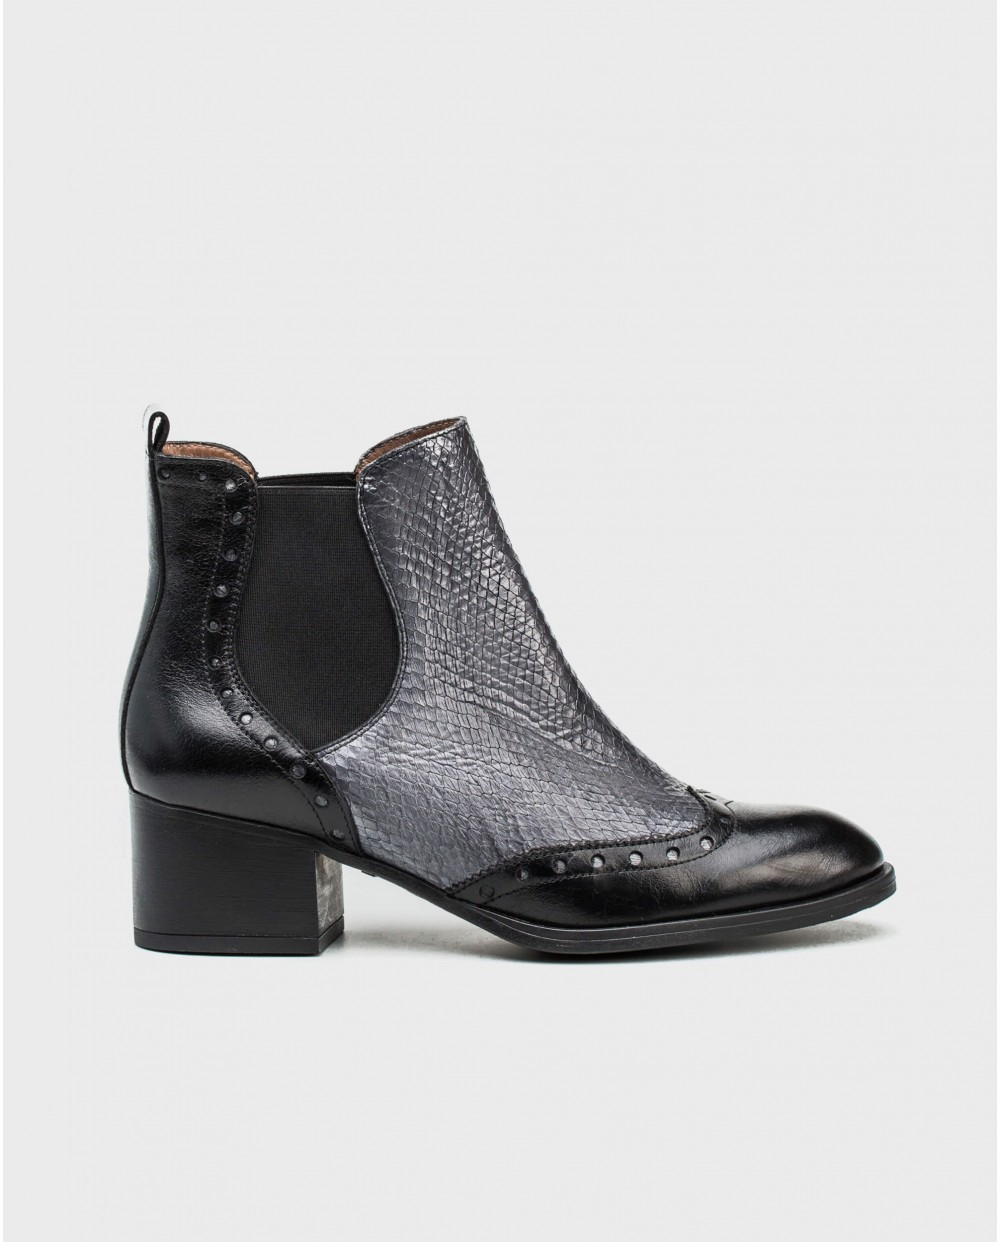 Wonders-Outlet-Oxford ankle boot in snake print